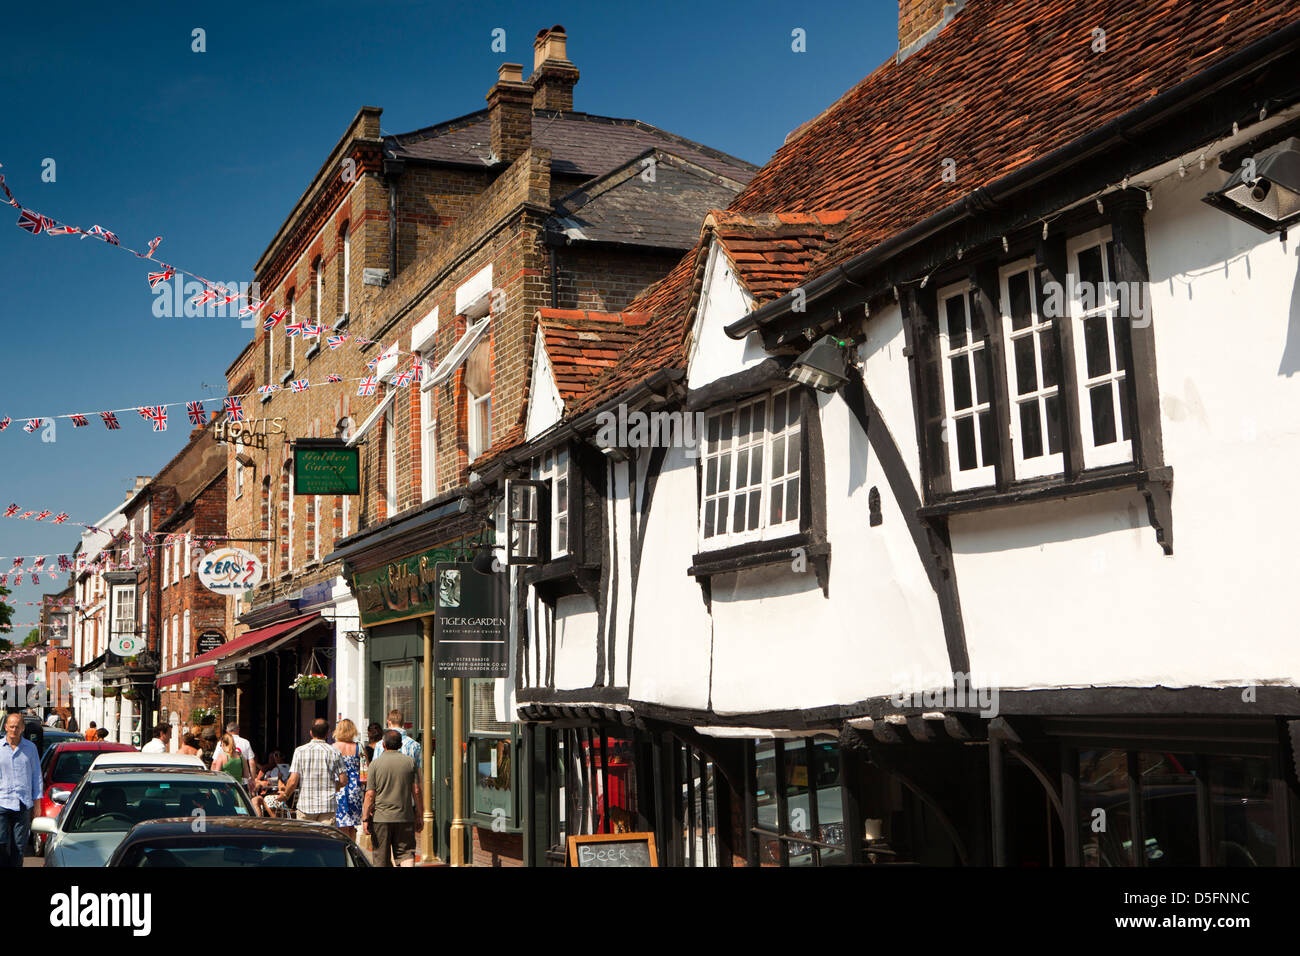 England, Berkshire, Eton High Street, Tiger Garden in ancient building formerly known as the cockpit - Stock Image